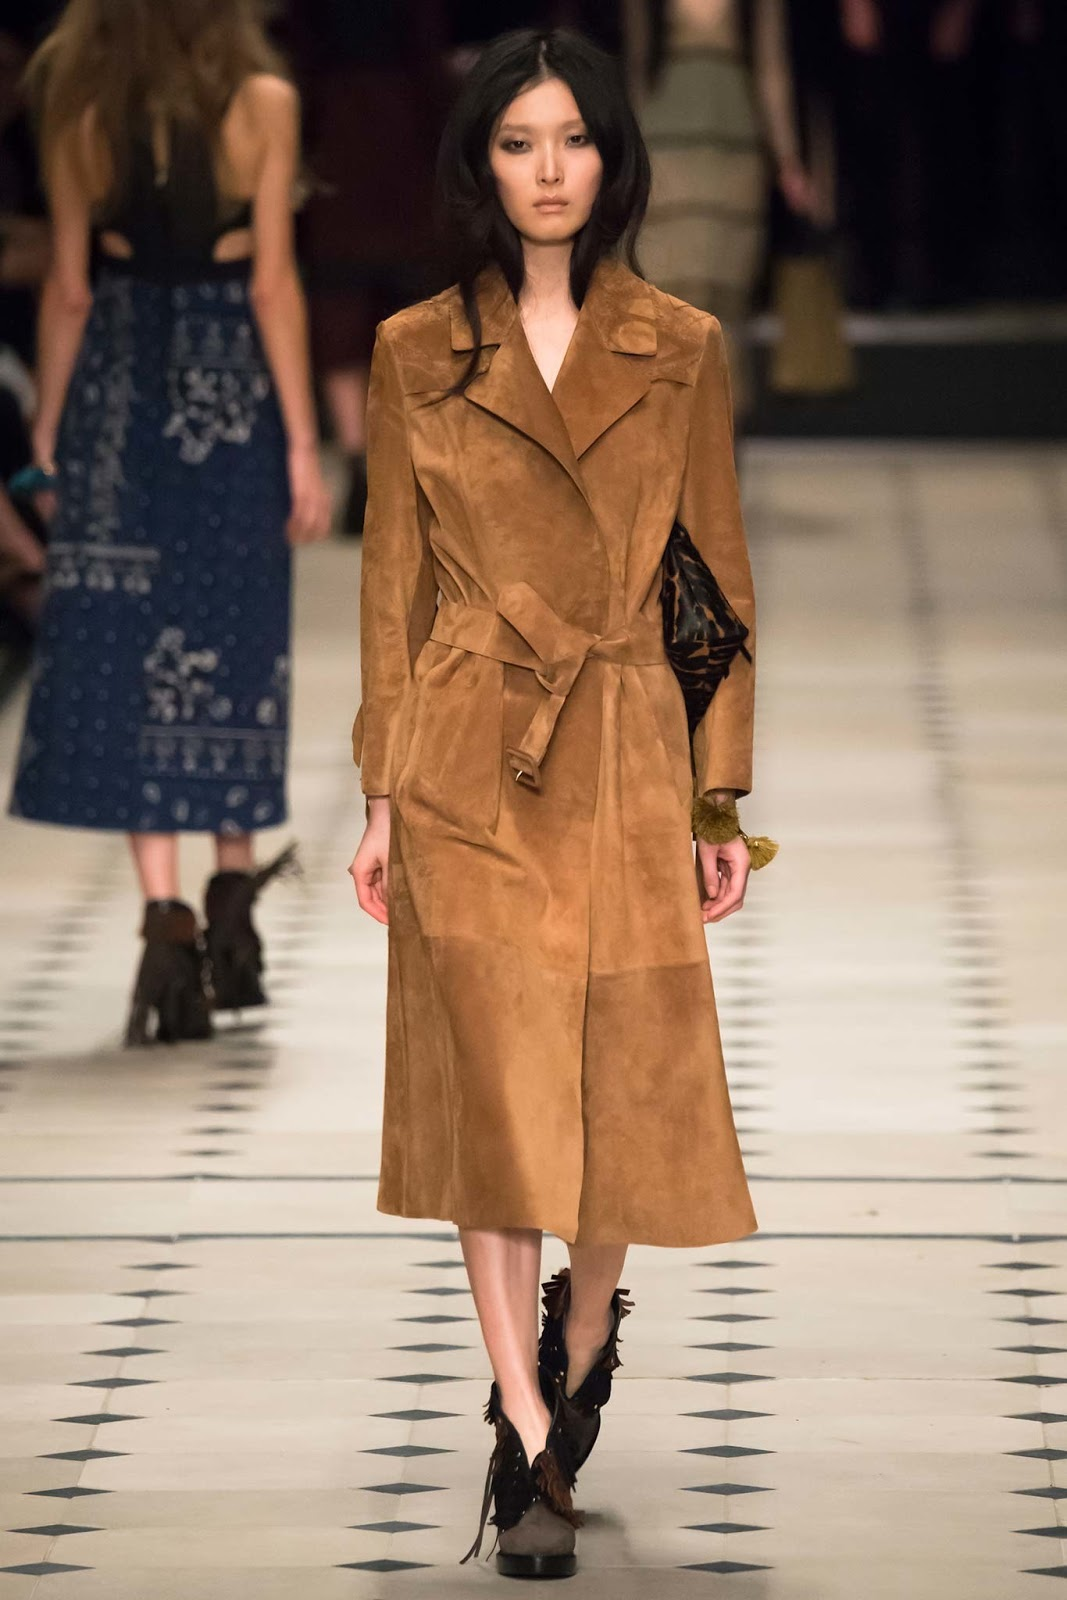 Trench coats as seen on a runway at Burberry Prorsum Autumn/Winter 2015 via www.fashionedbylove.co.uk